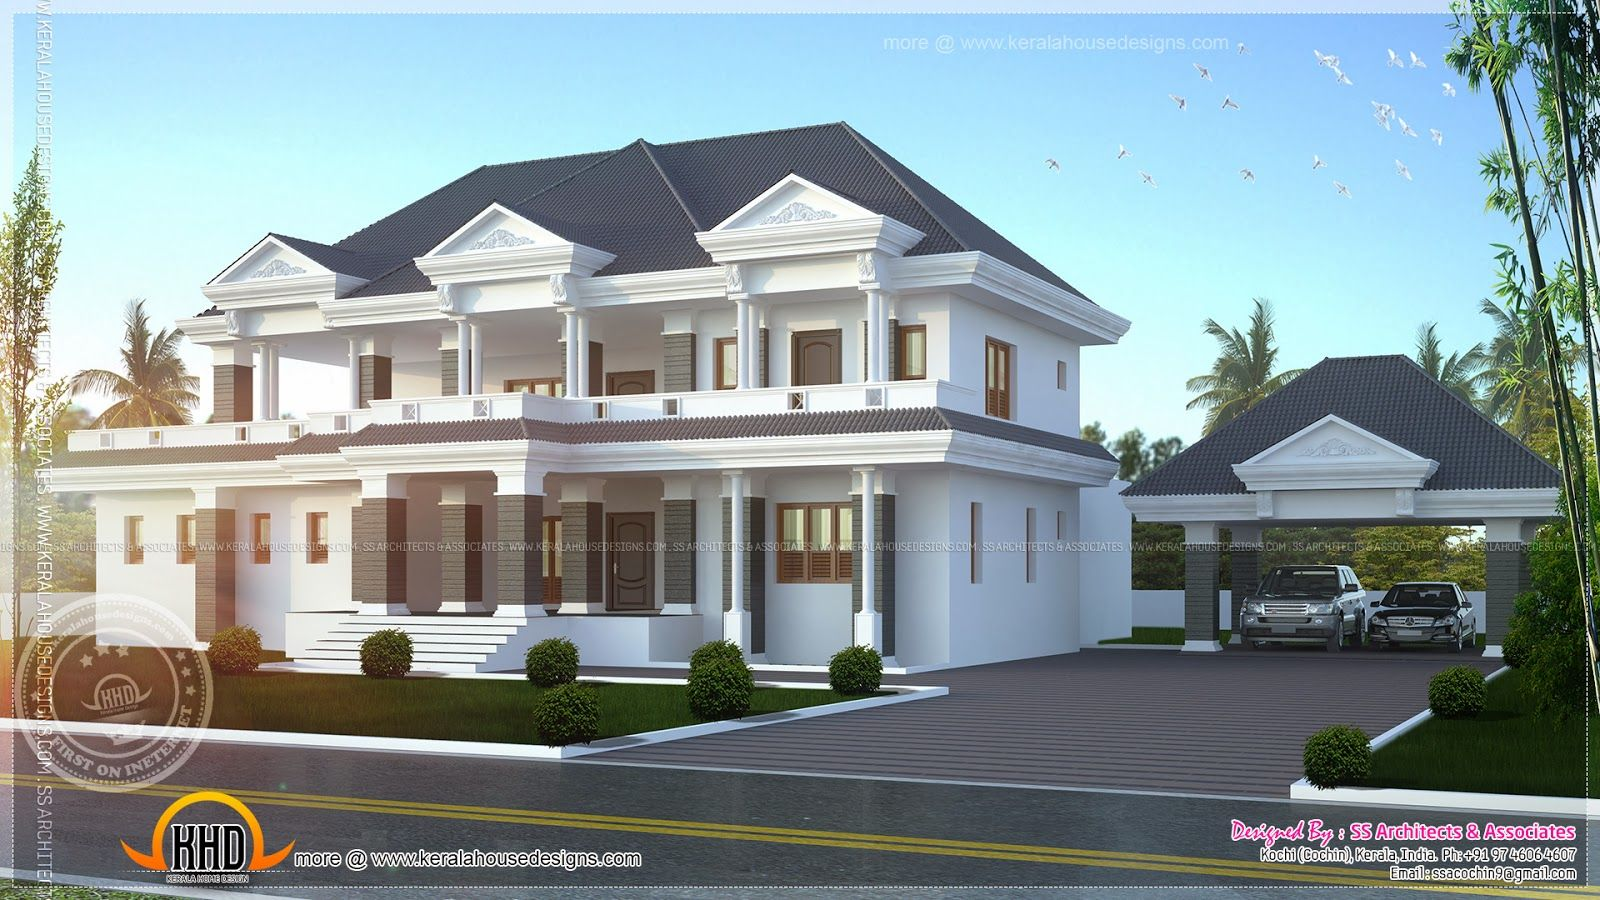 Luxury house plans posh luxury home plan audisb luxury for Luxury house